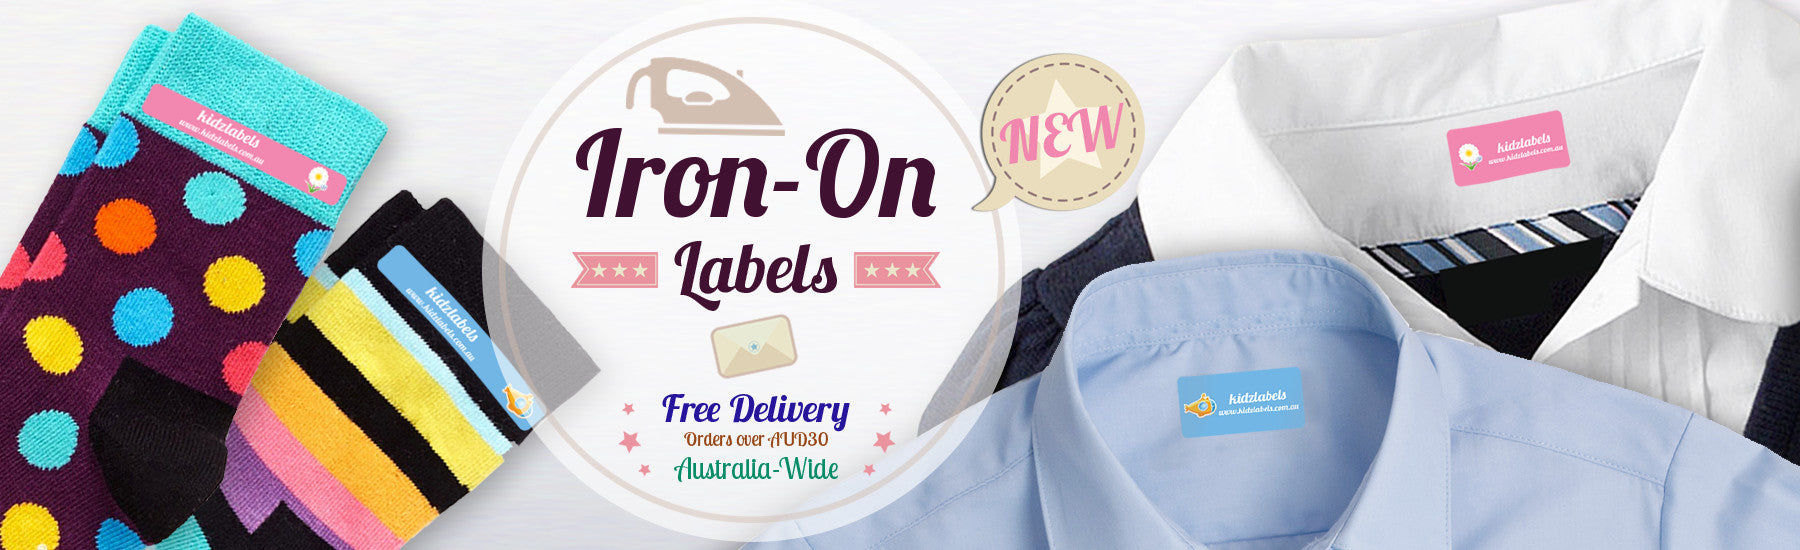 Iron-on Clothing Labels